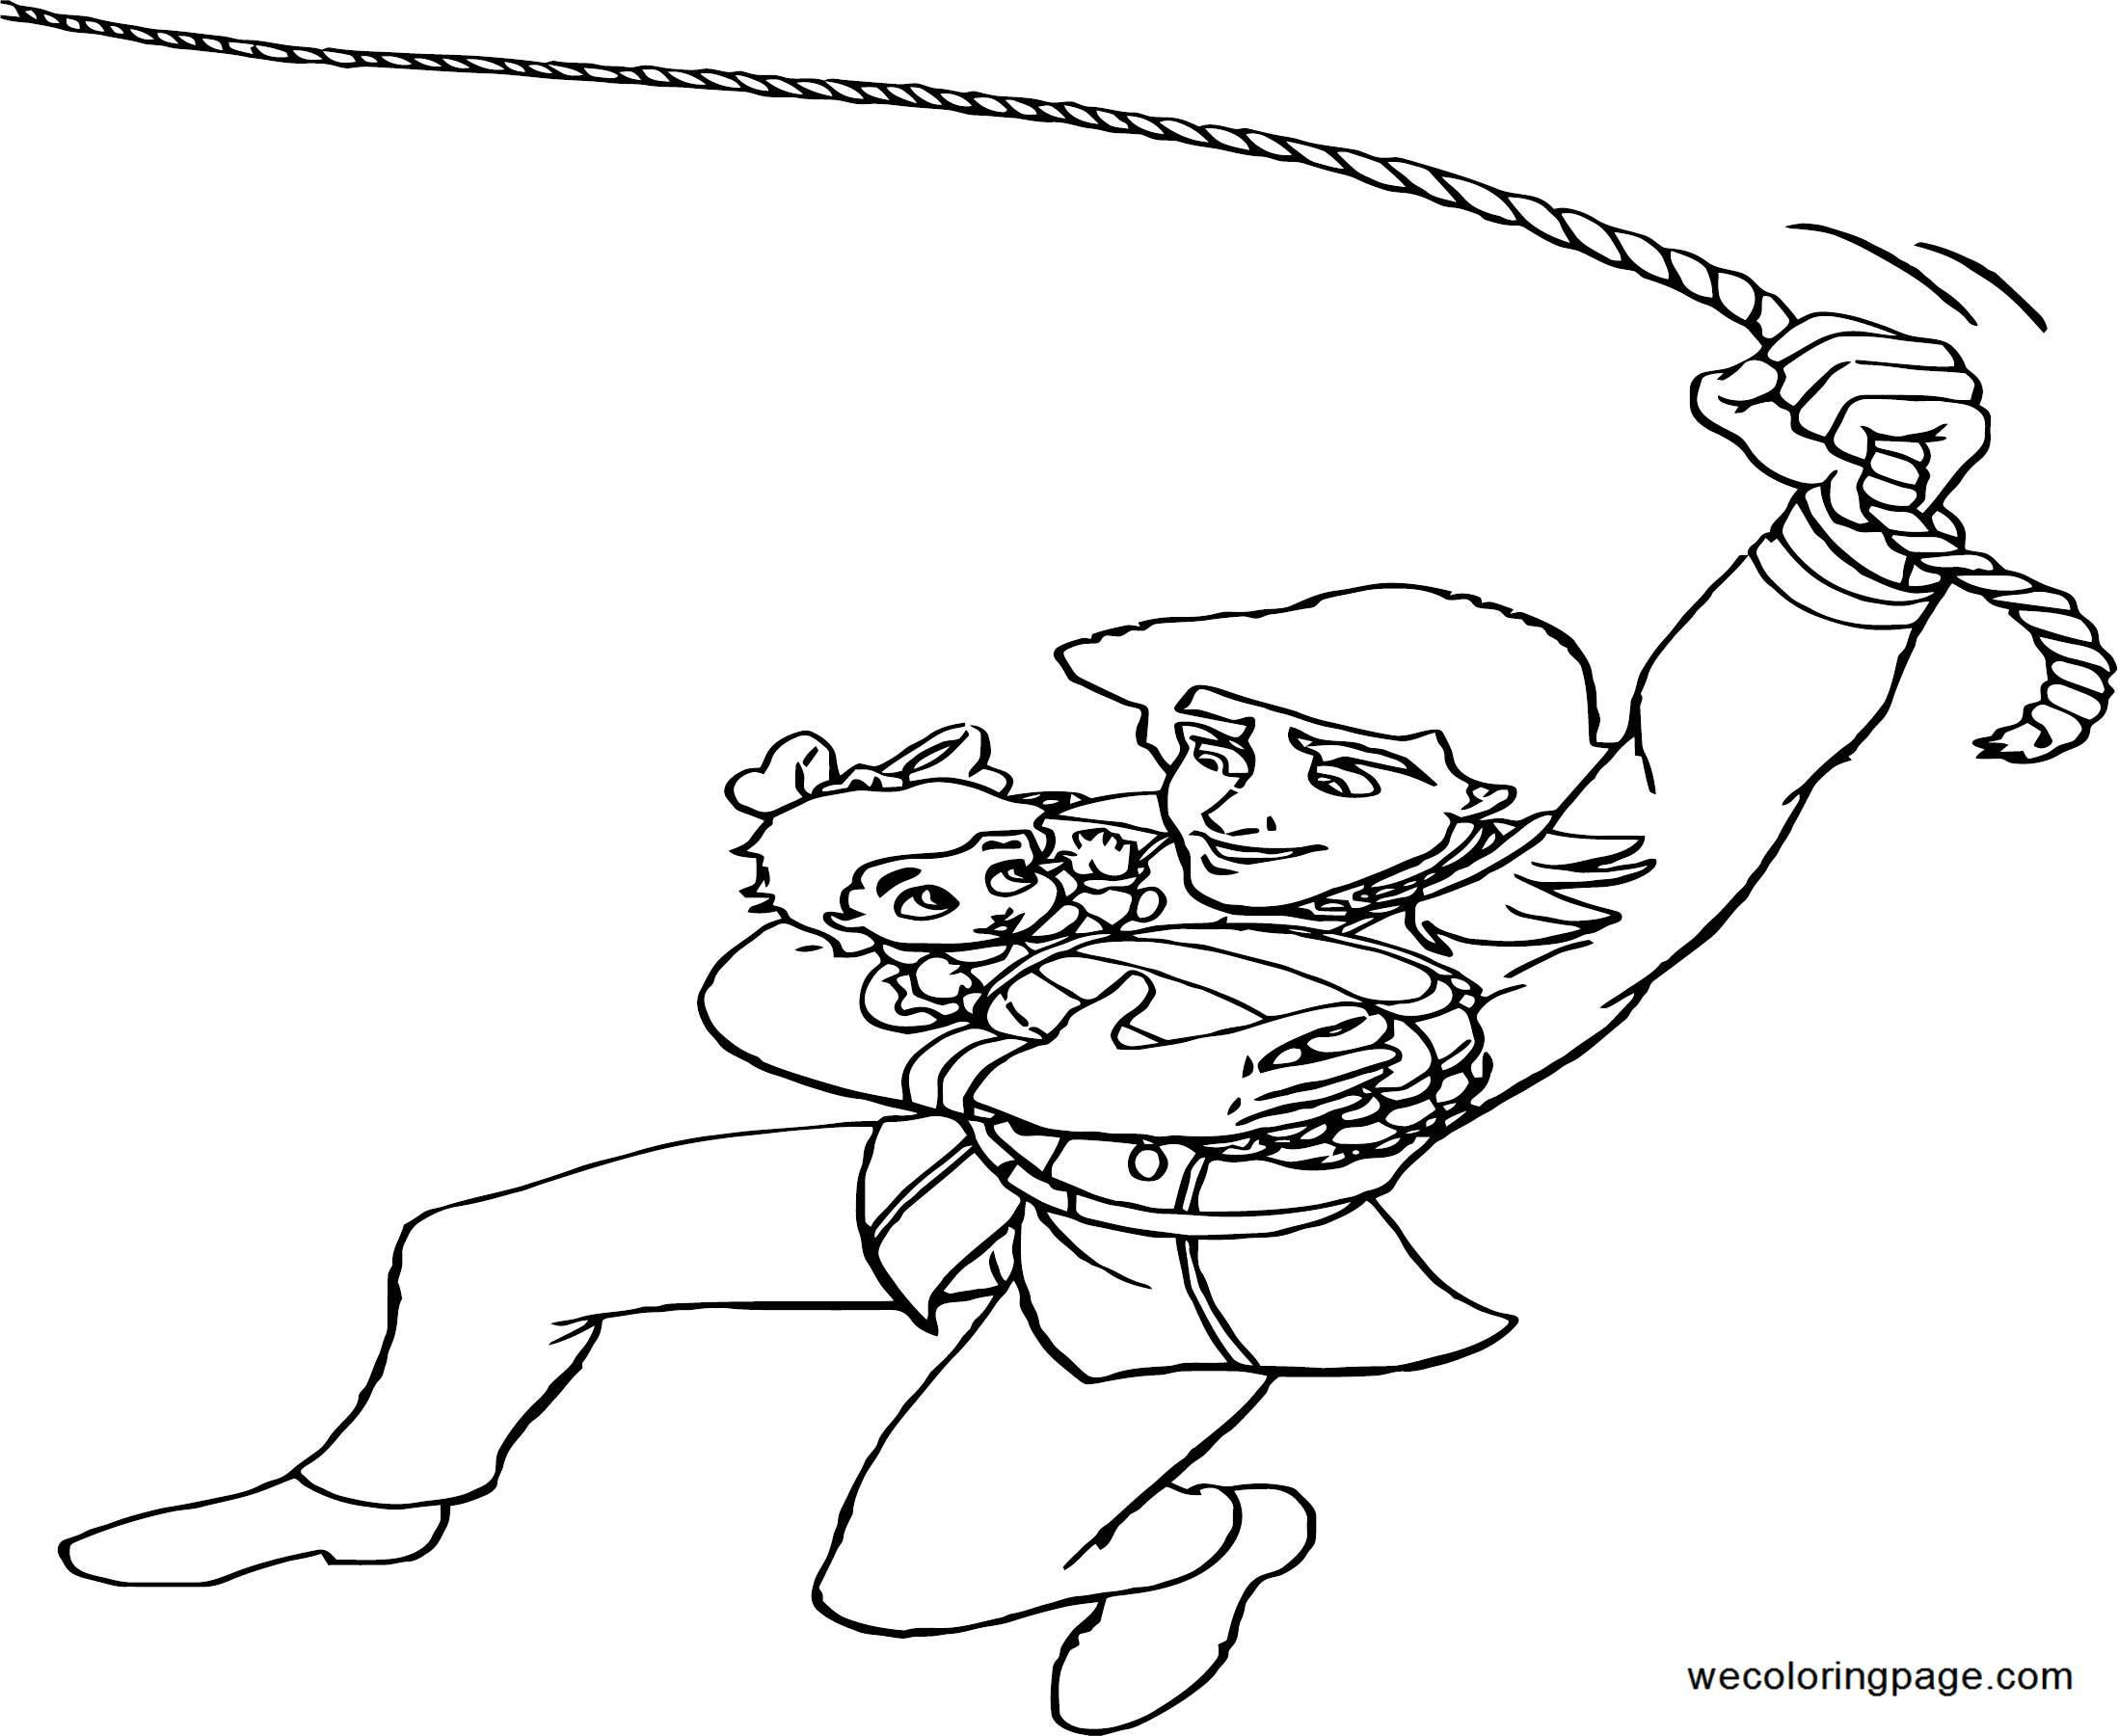 Disney The Little Mermaid 2 Return to the Sea Coloring Page 31